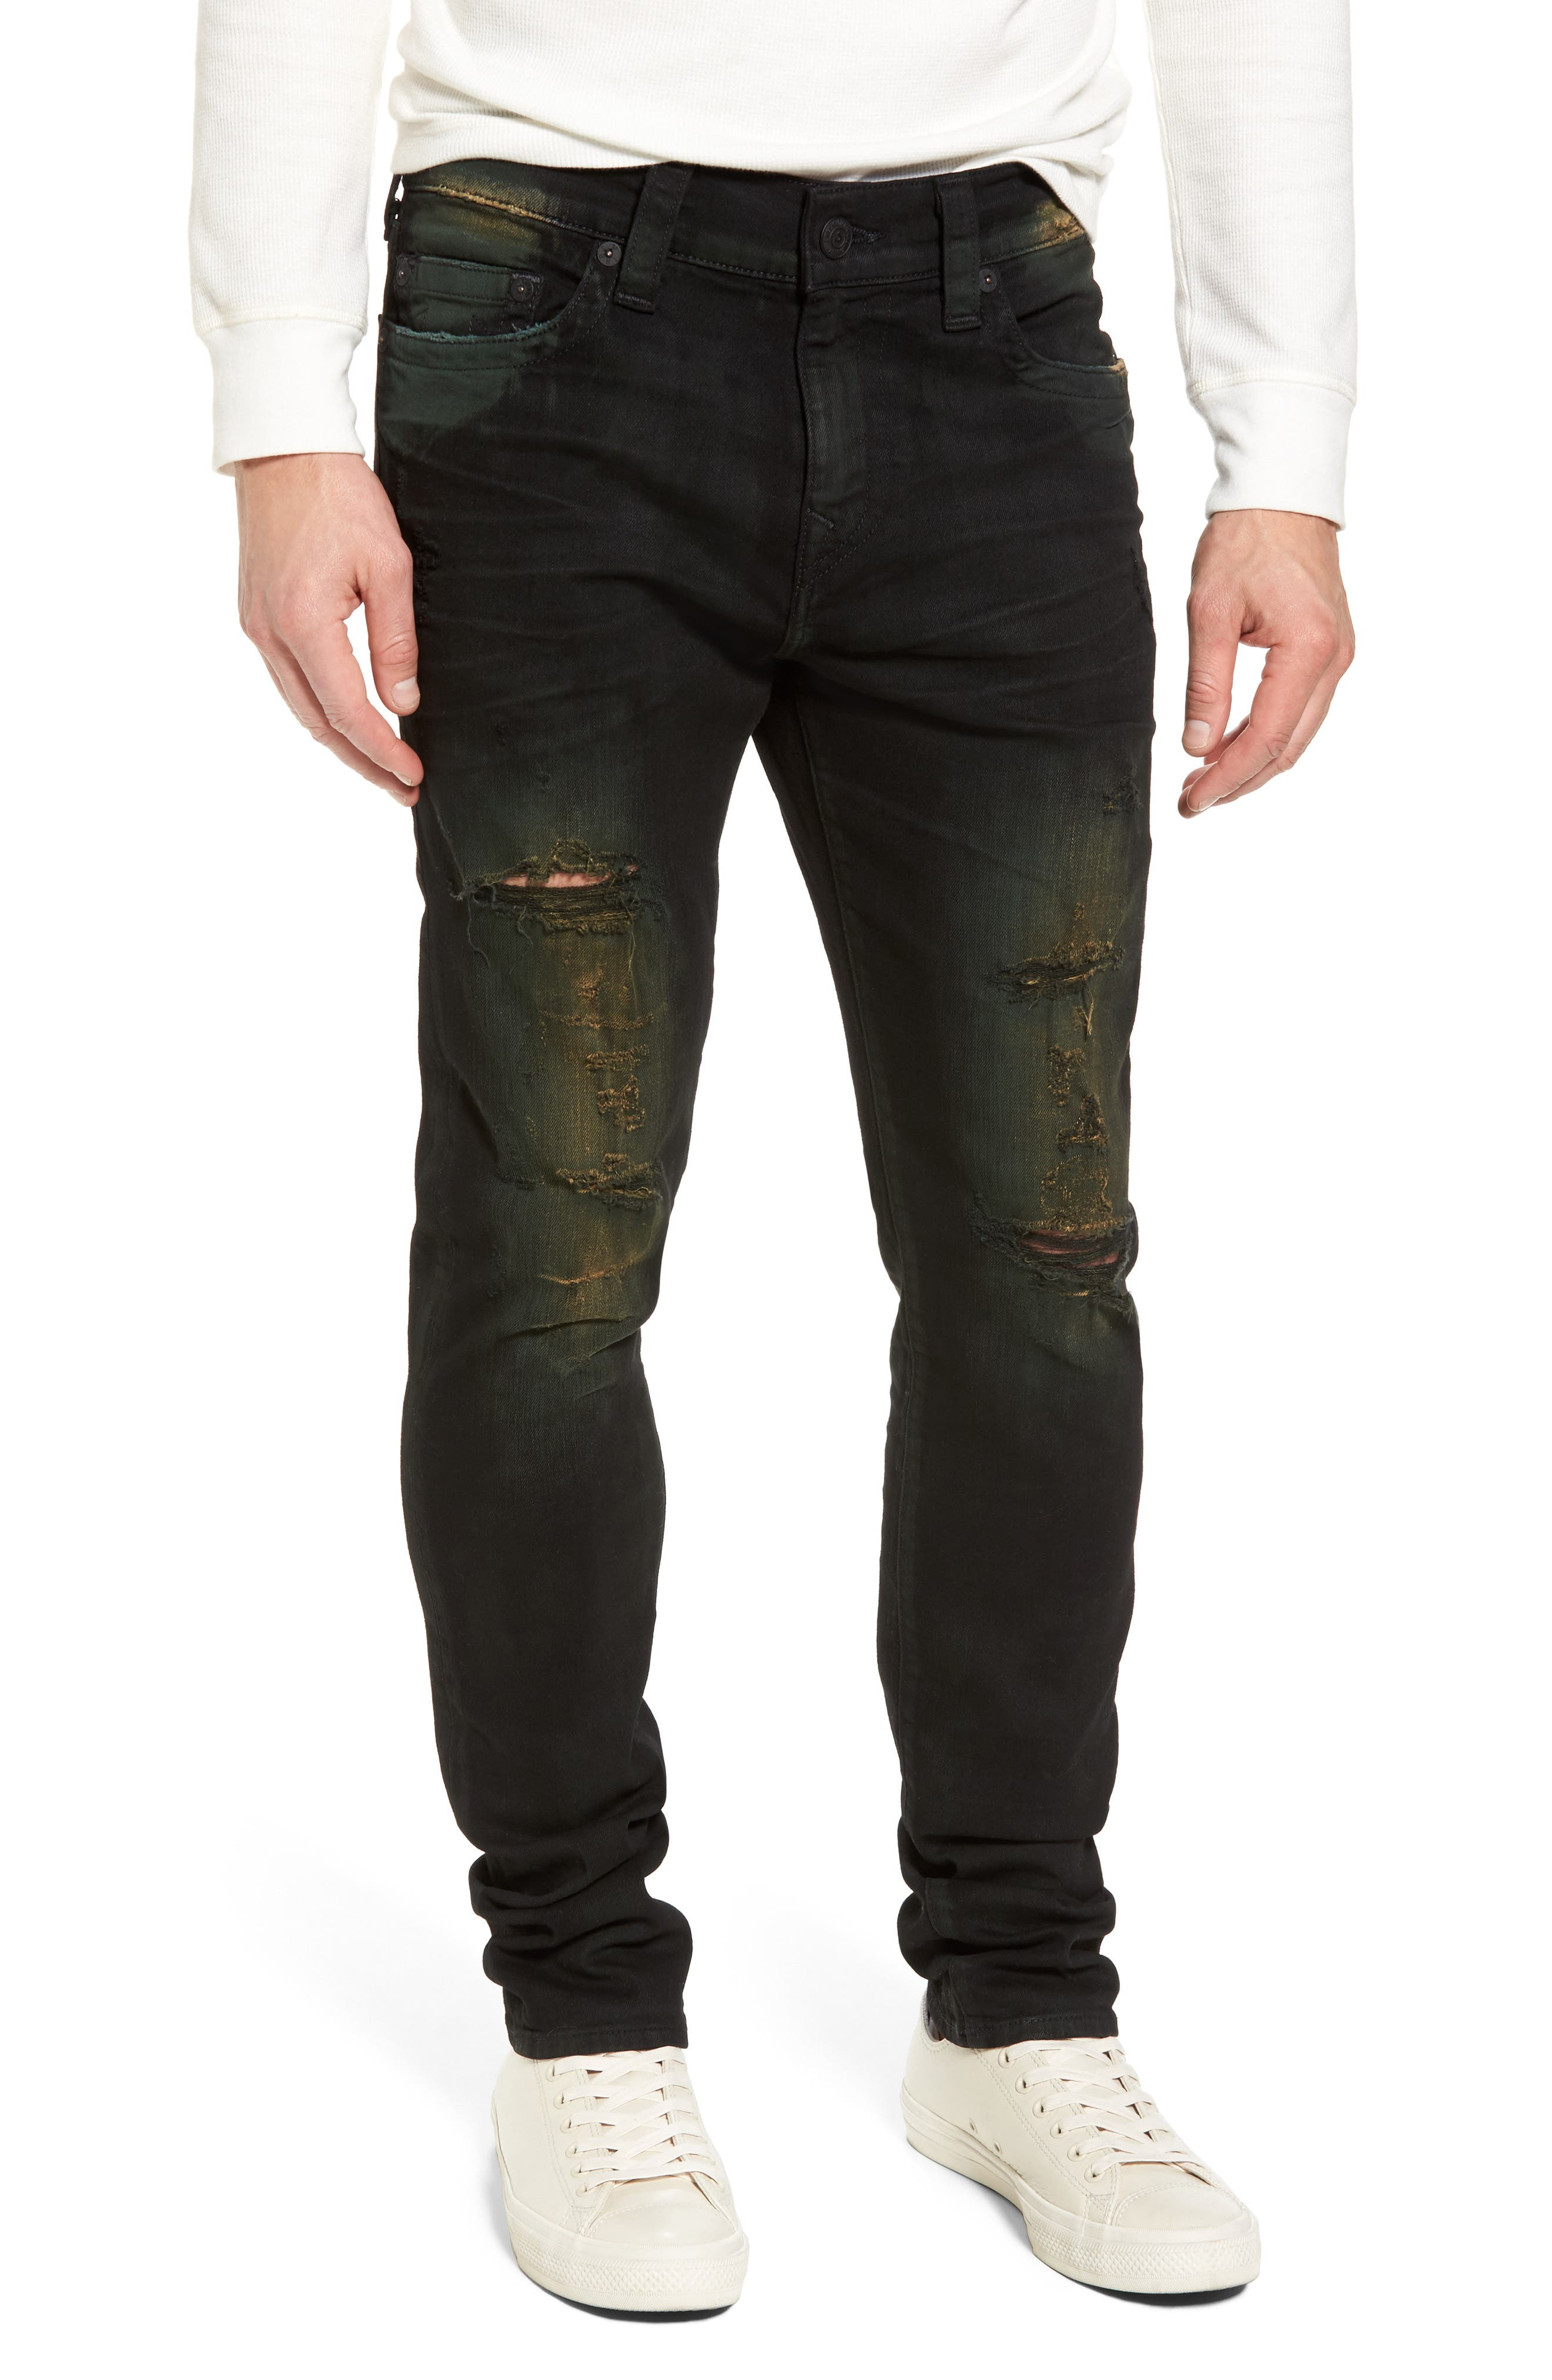 Rocco Skinny Fit Jeans,                             Main thumbnail 1, color,                             GREEN BLAZE